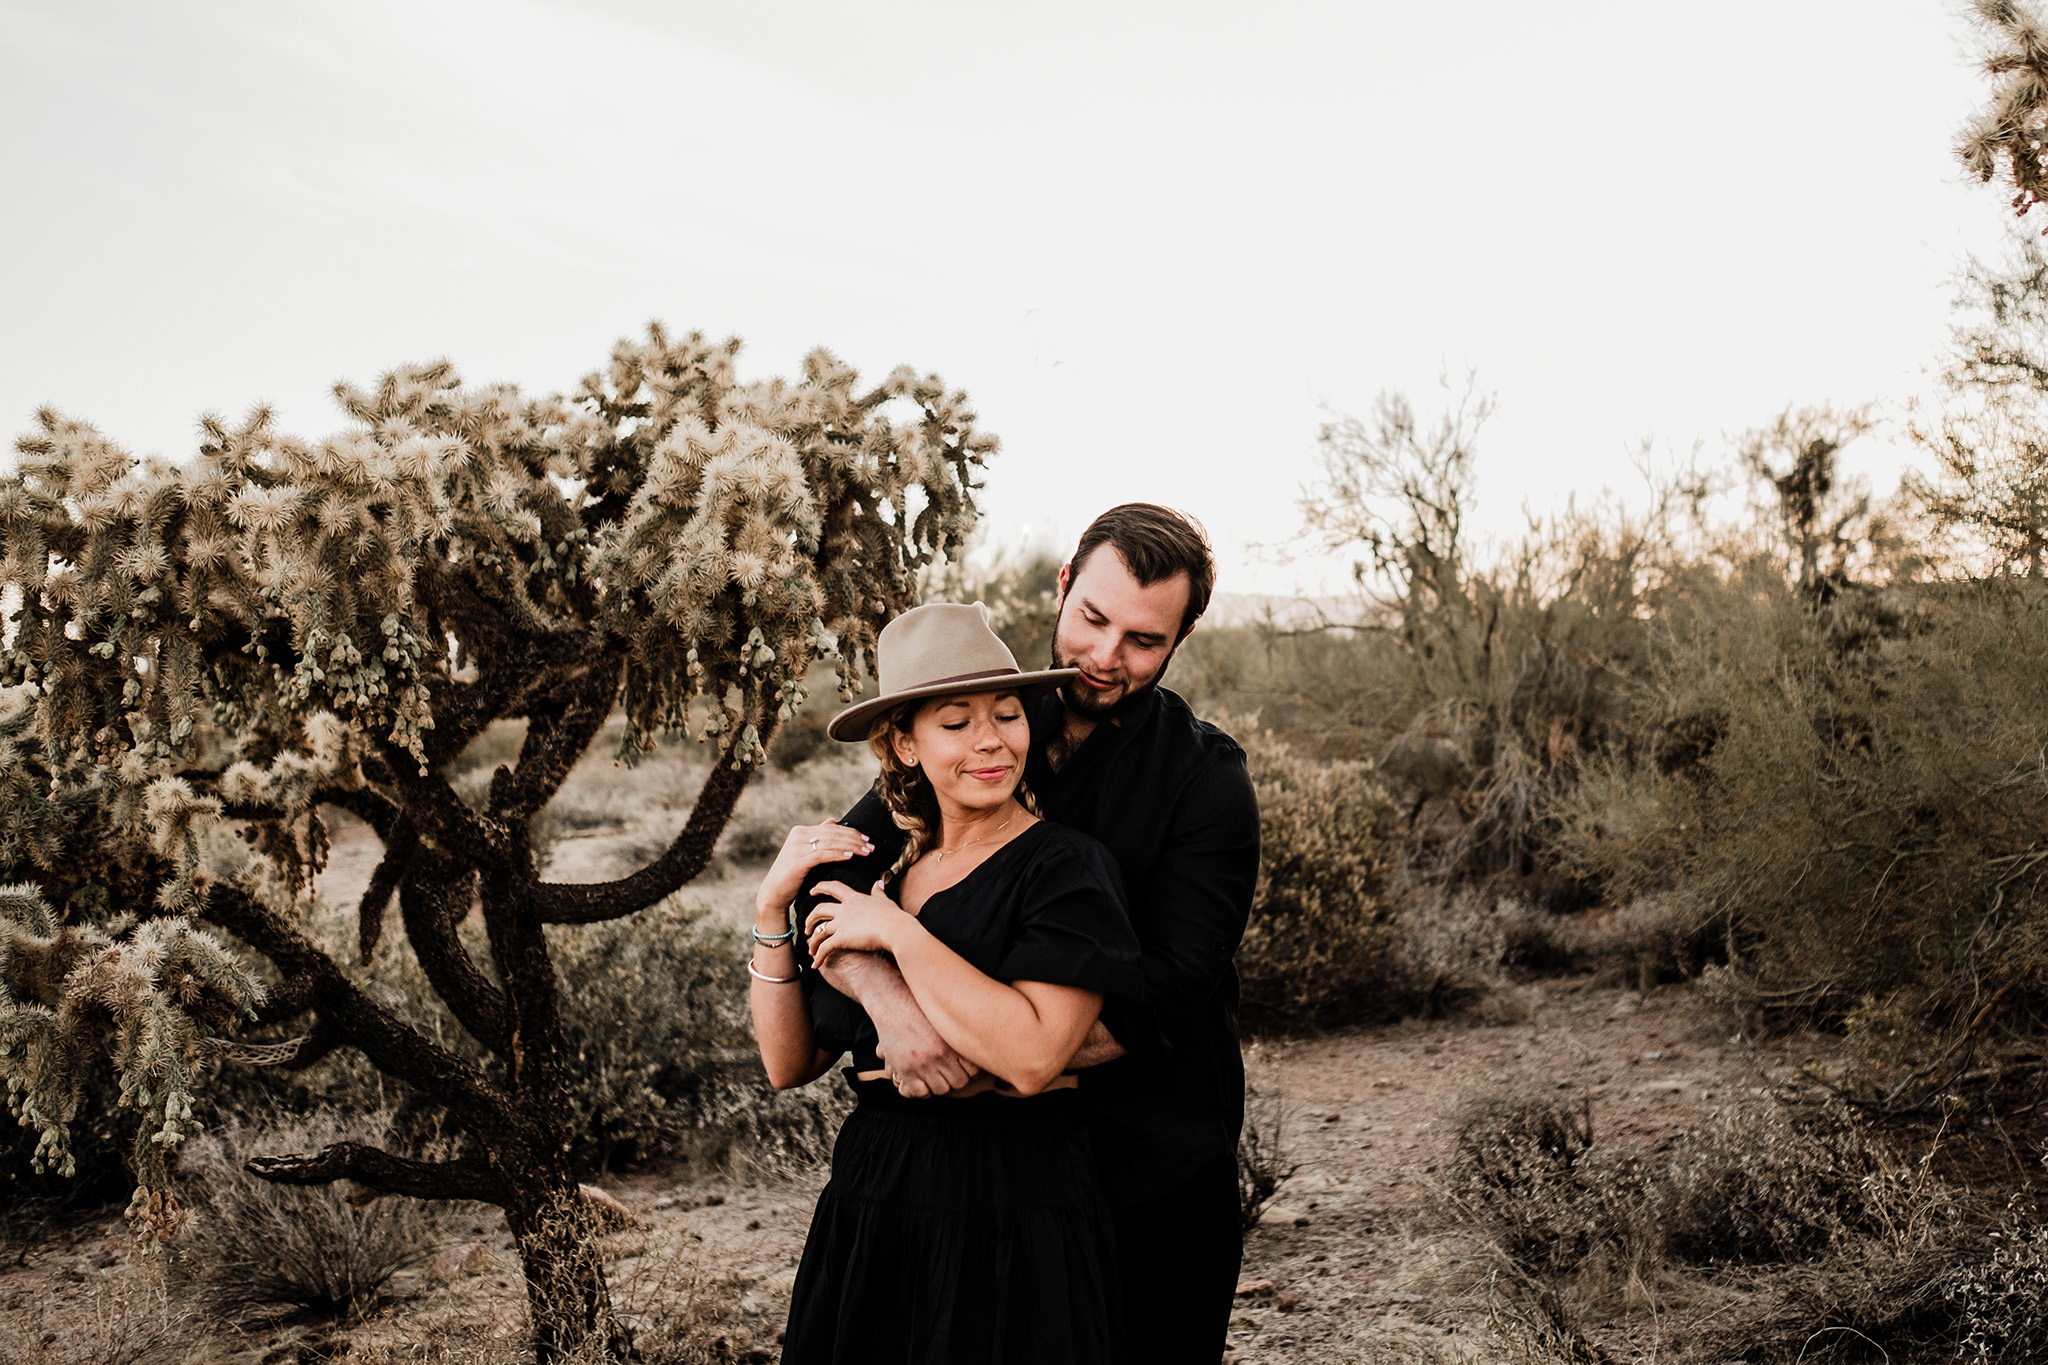 Arizona-Desert-Intimate-Wedding-Photographer-Lost-Dutchman-State-Park (13).jpg